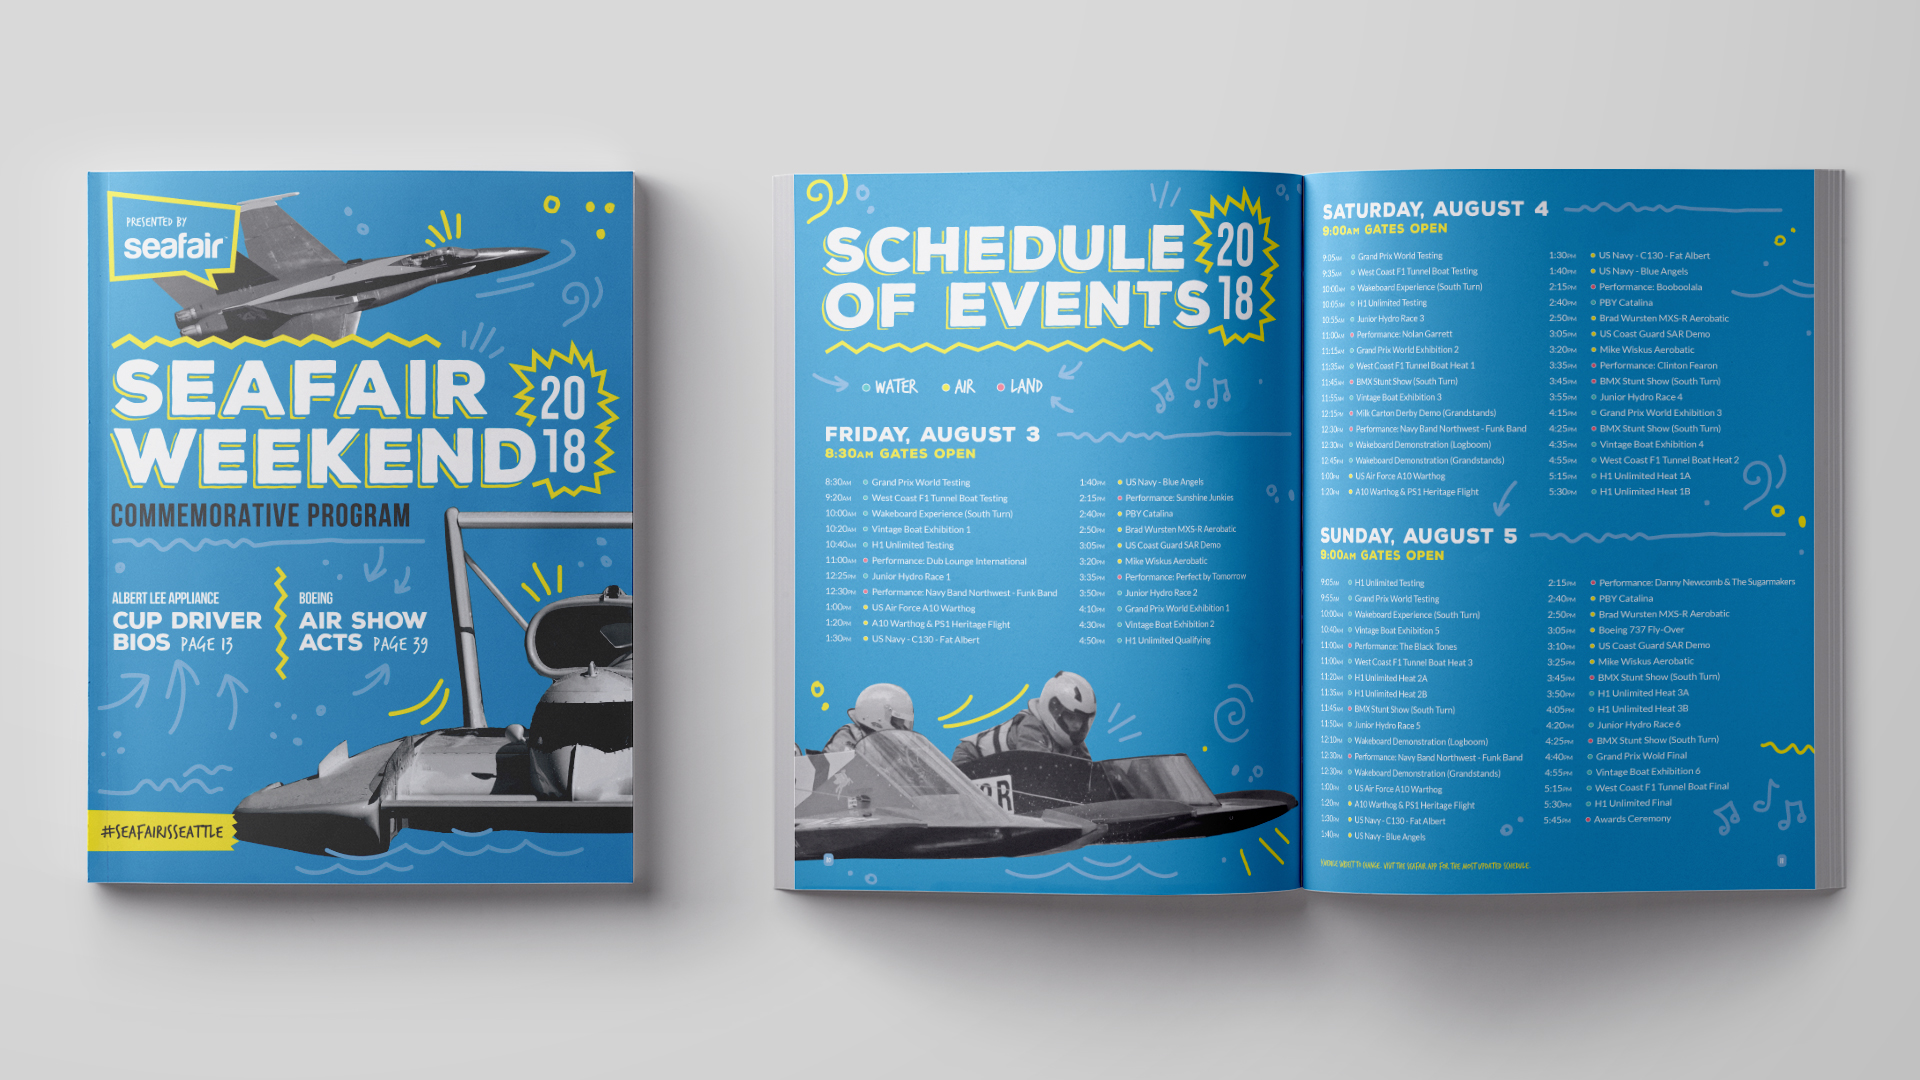 Seafair Weekend Commemorative Program Cover and Schedule of Events